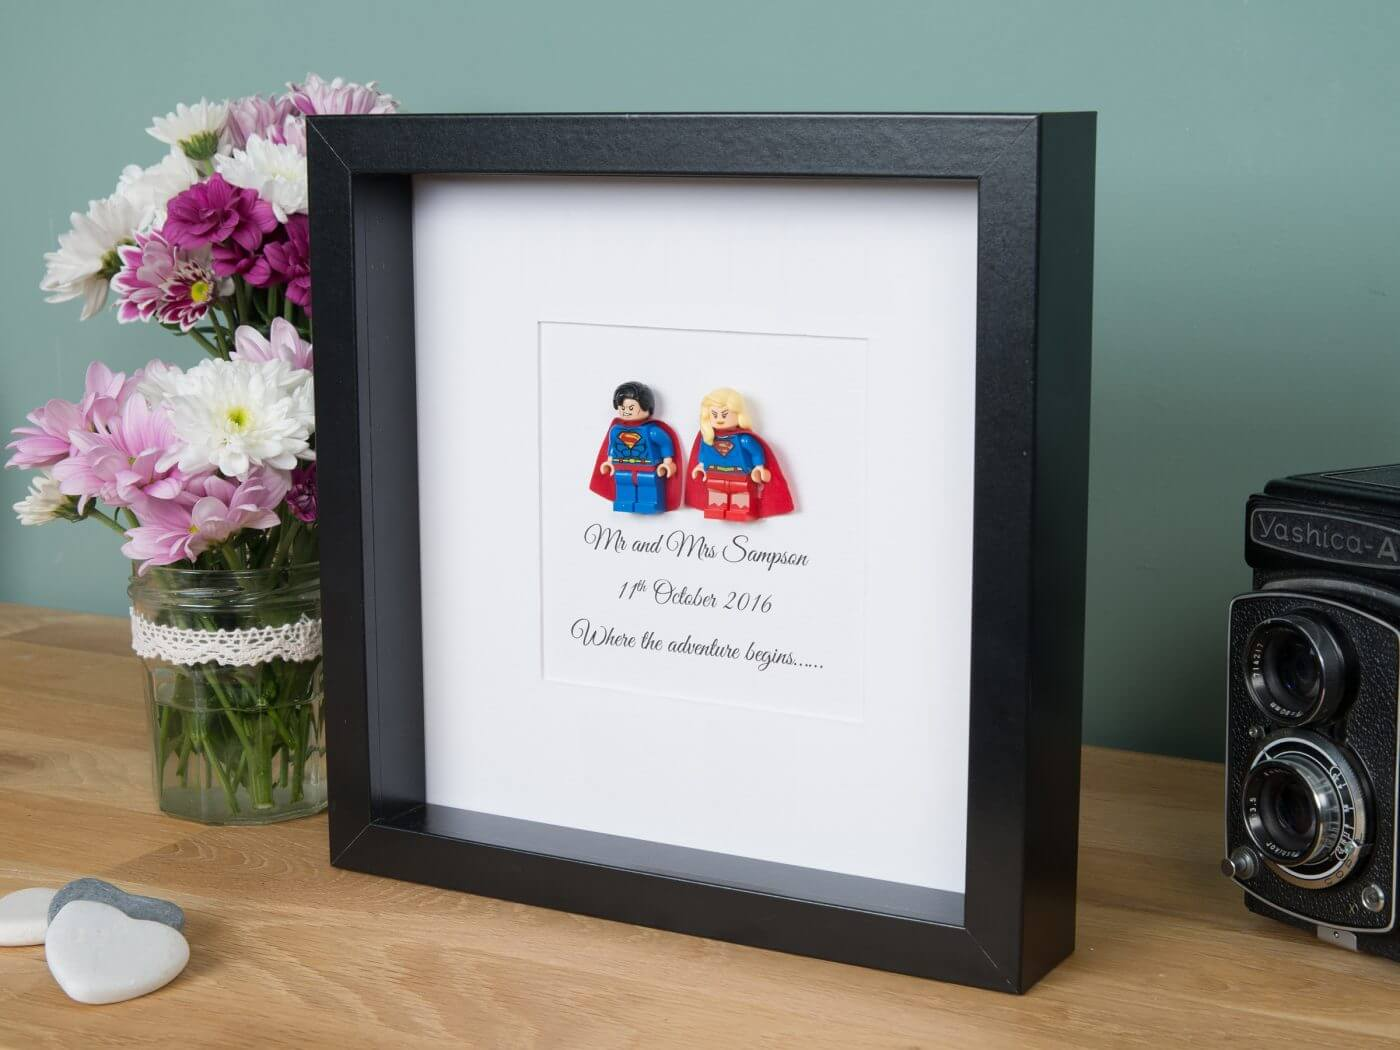 Lego Superhero Wedding Frame Personalised Gifts Free Uk Delivery